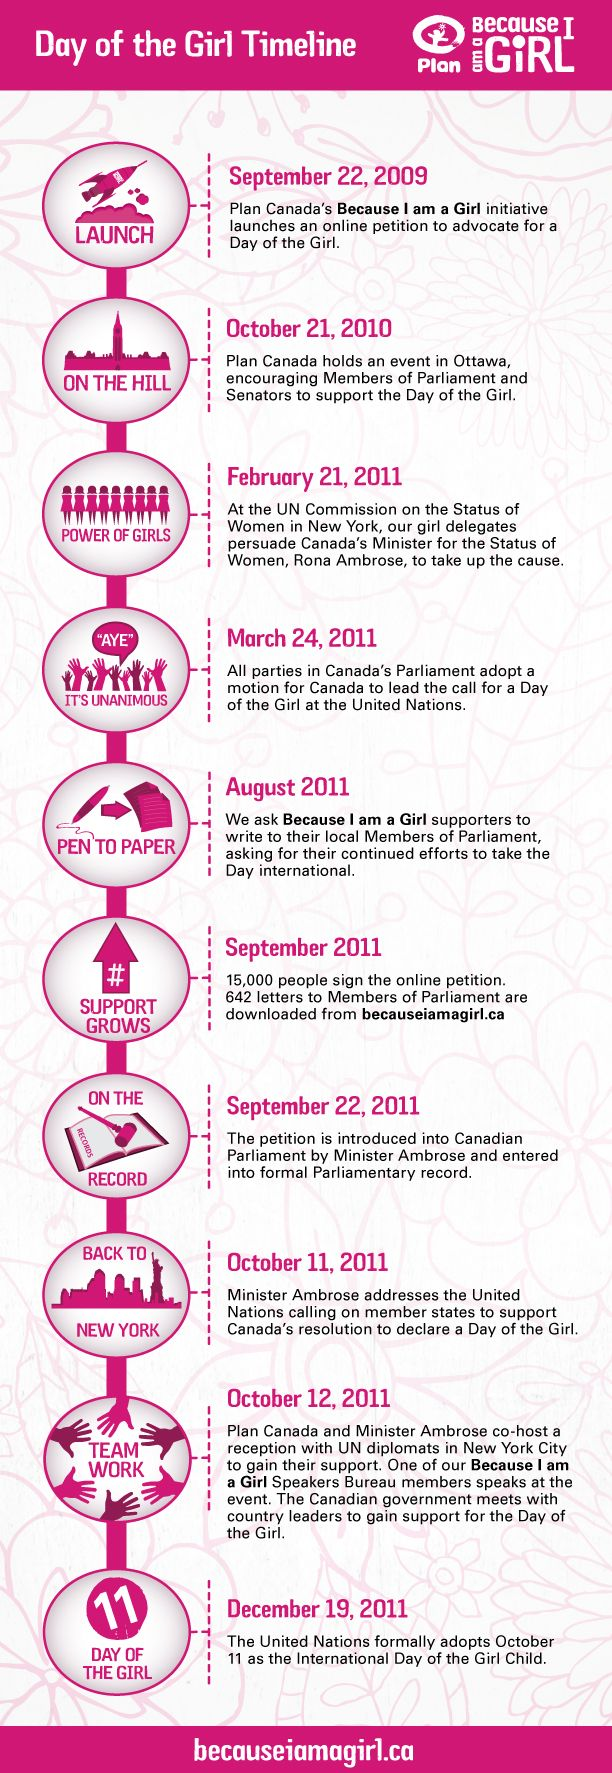 A timeline outlining how Plan Canada supporters campaigned to have Oct. 11 declared International Day of the Girl.